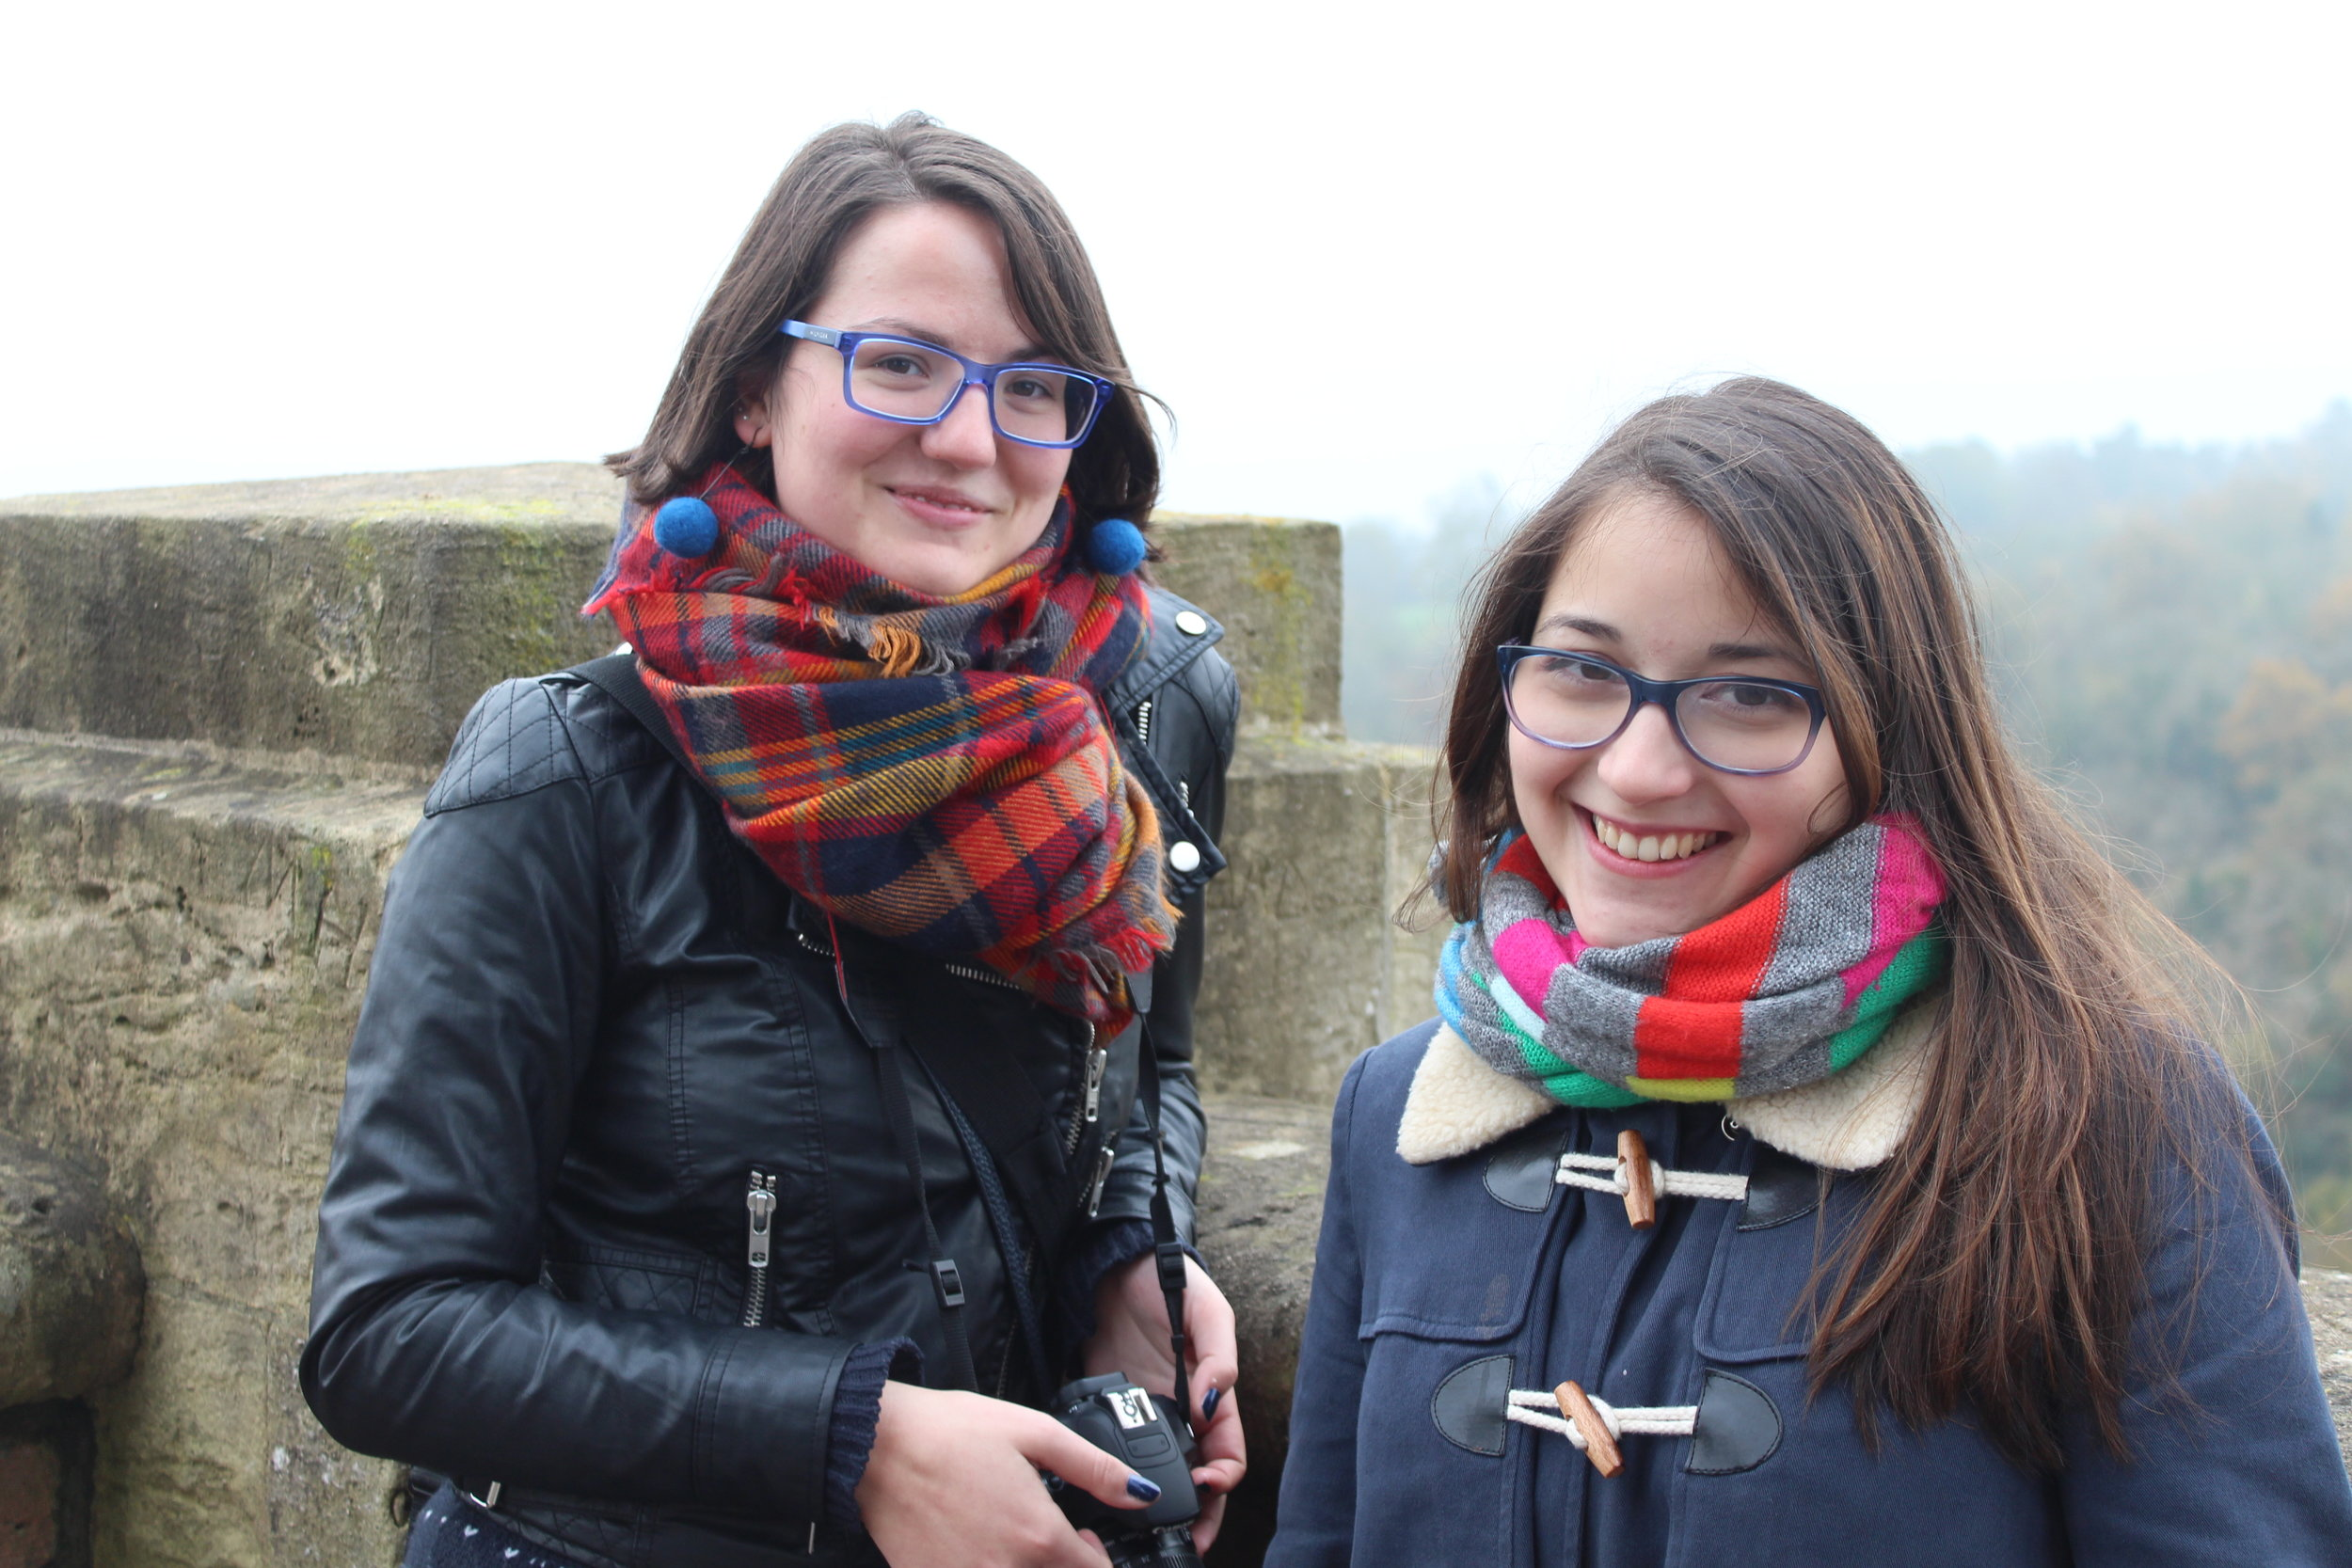 Isa and her best friend Adela outside the Suspension Bridge